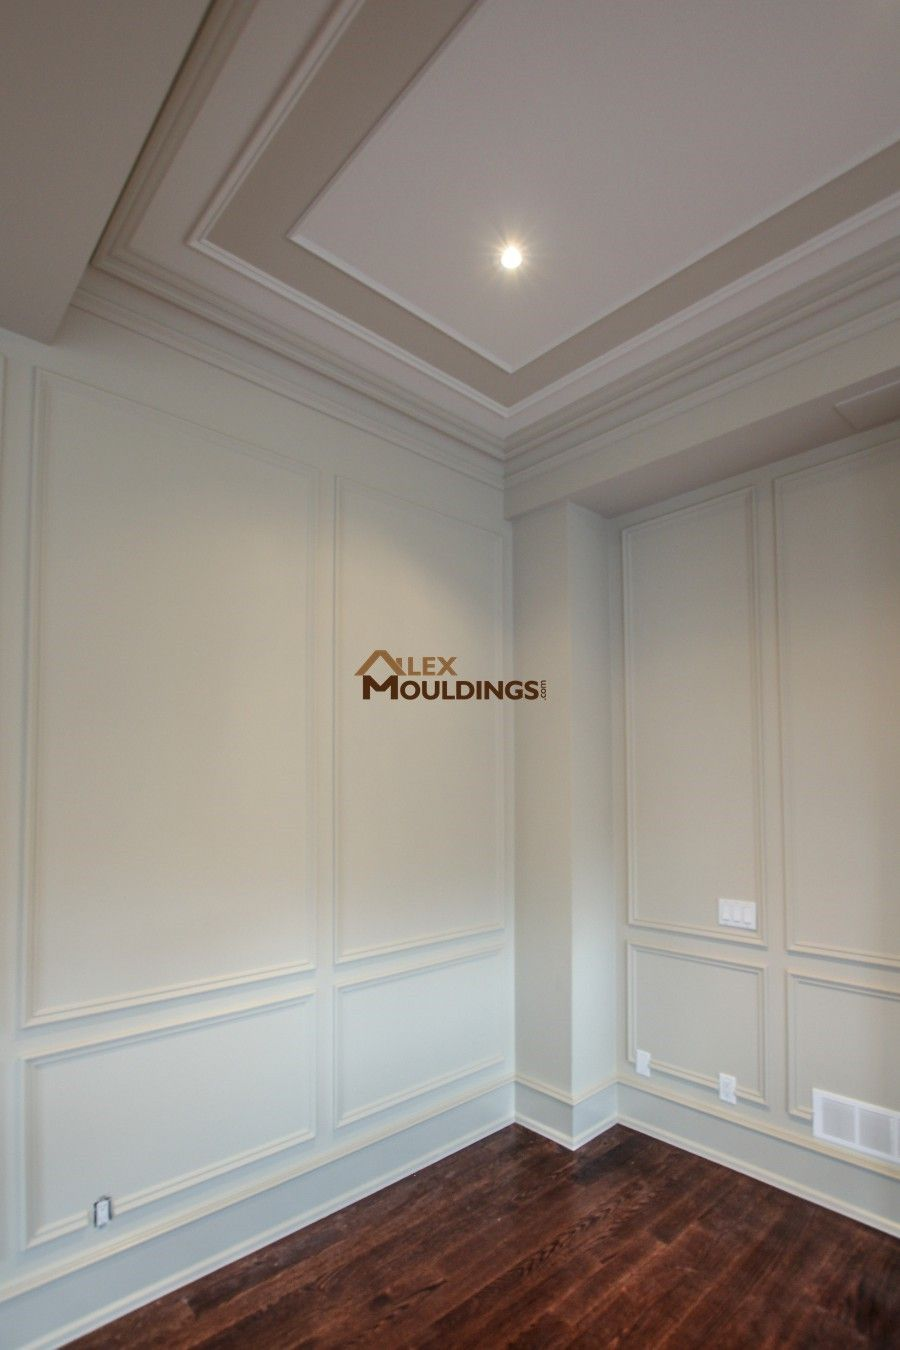 Null Wall Lications Interior Trim Accent Panels